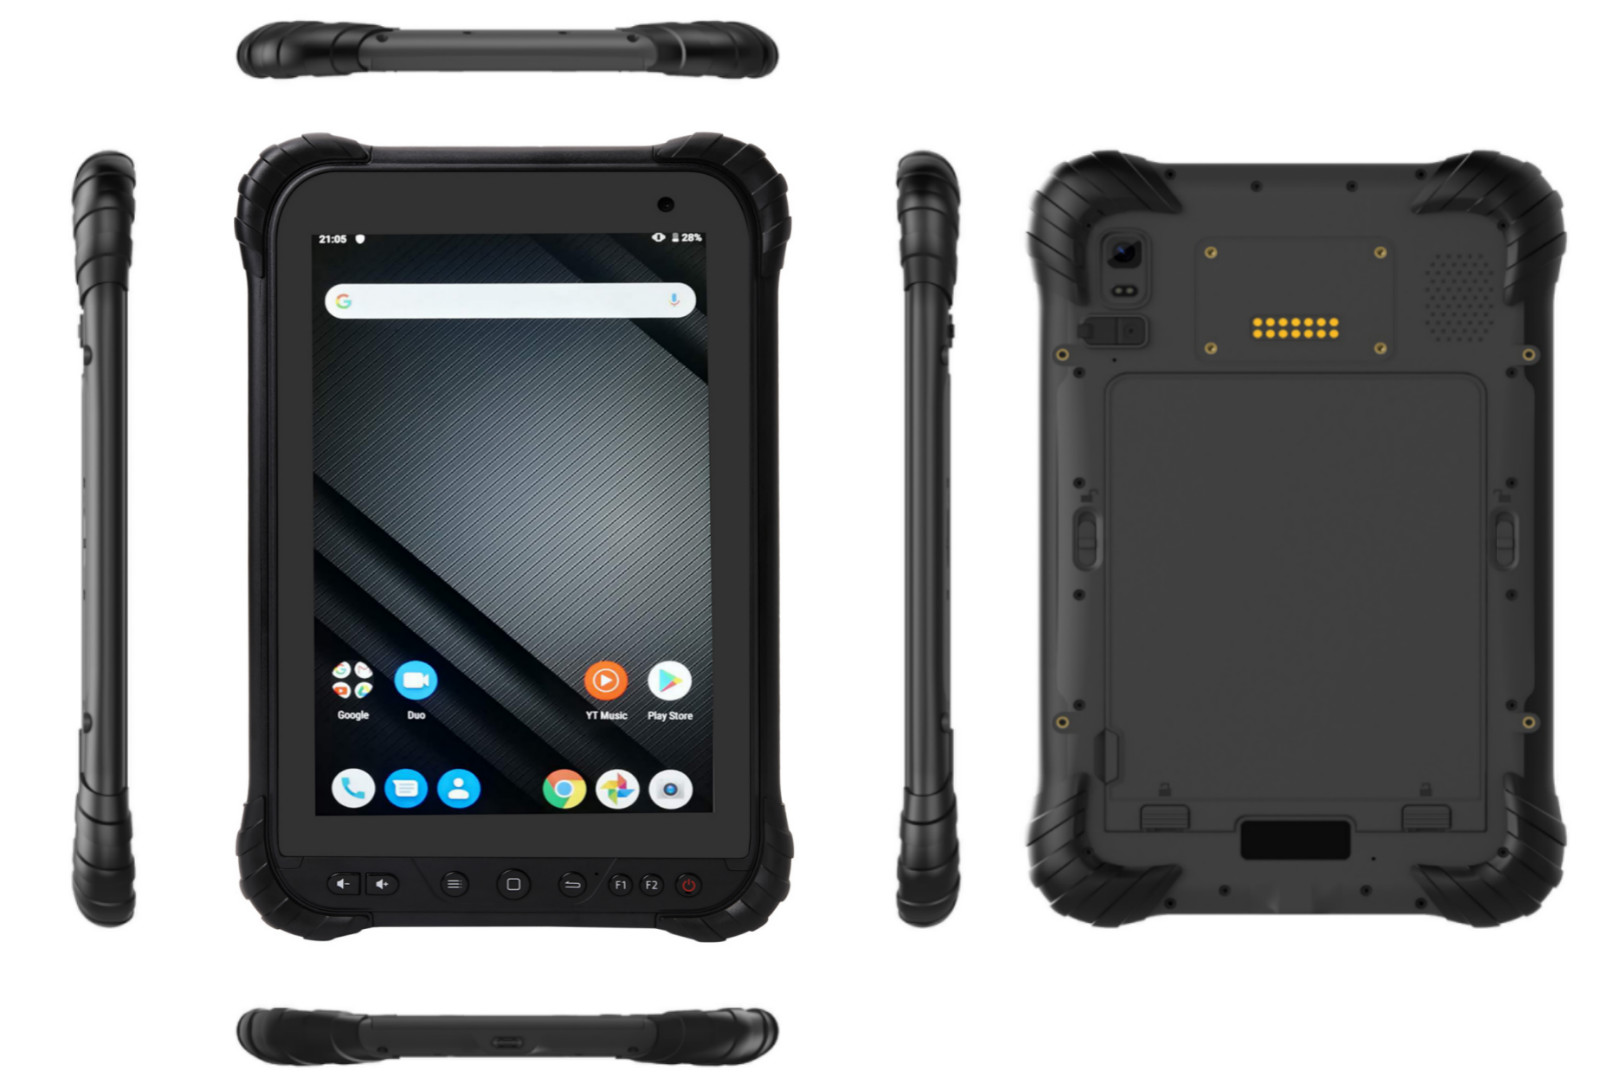 Cheap rugged tablet RuggedT T5 with powerful CPU